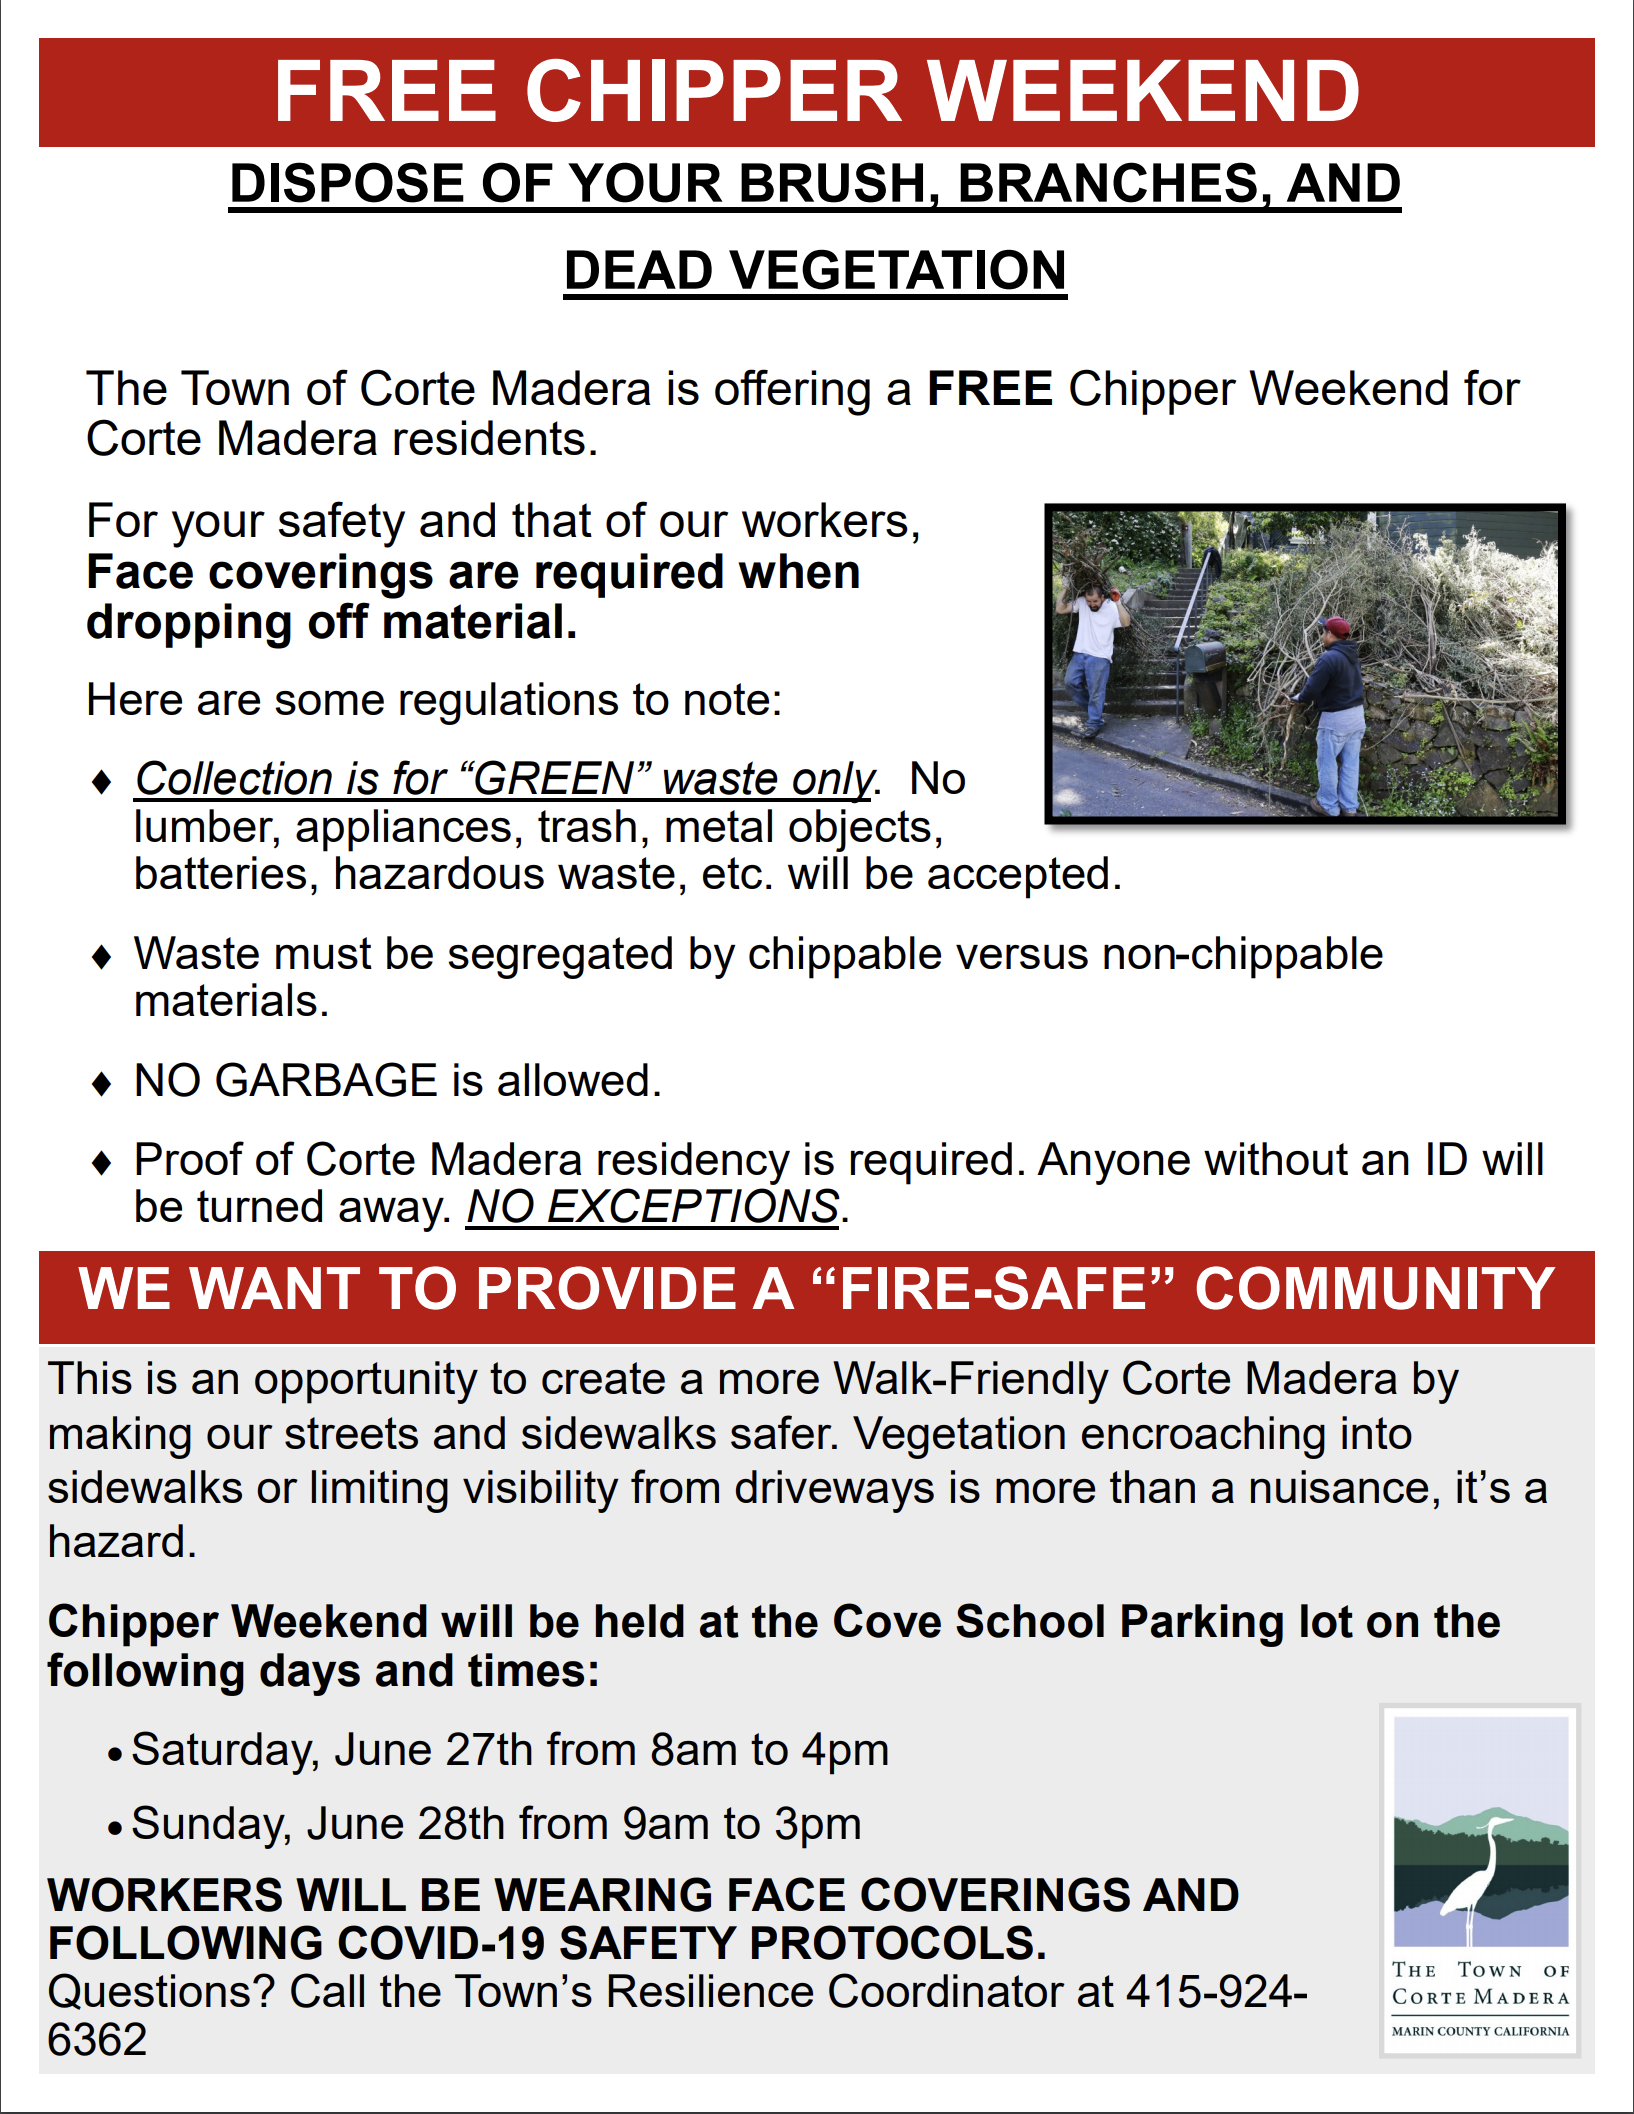 FREE CHIPPER WEEKEND @ COVE SCHOOL FOR CORTE MADERA RESIDENTS  ON JUNE 27th & 28th!